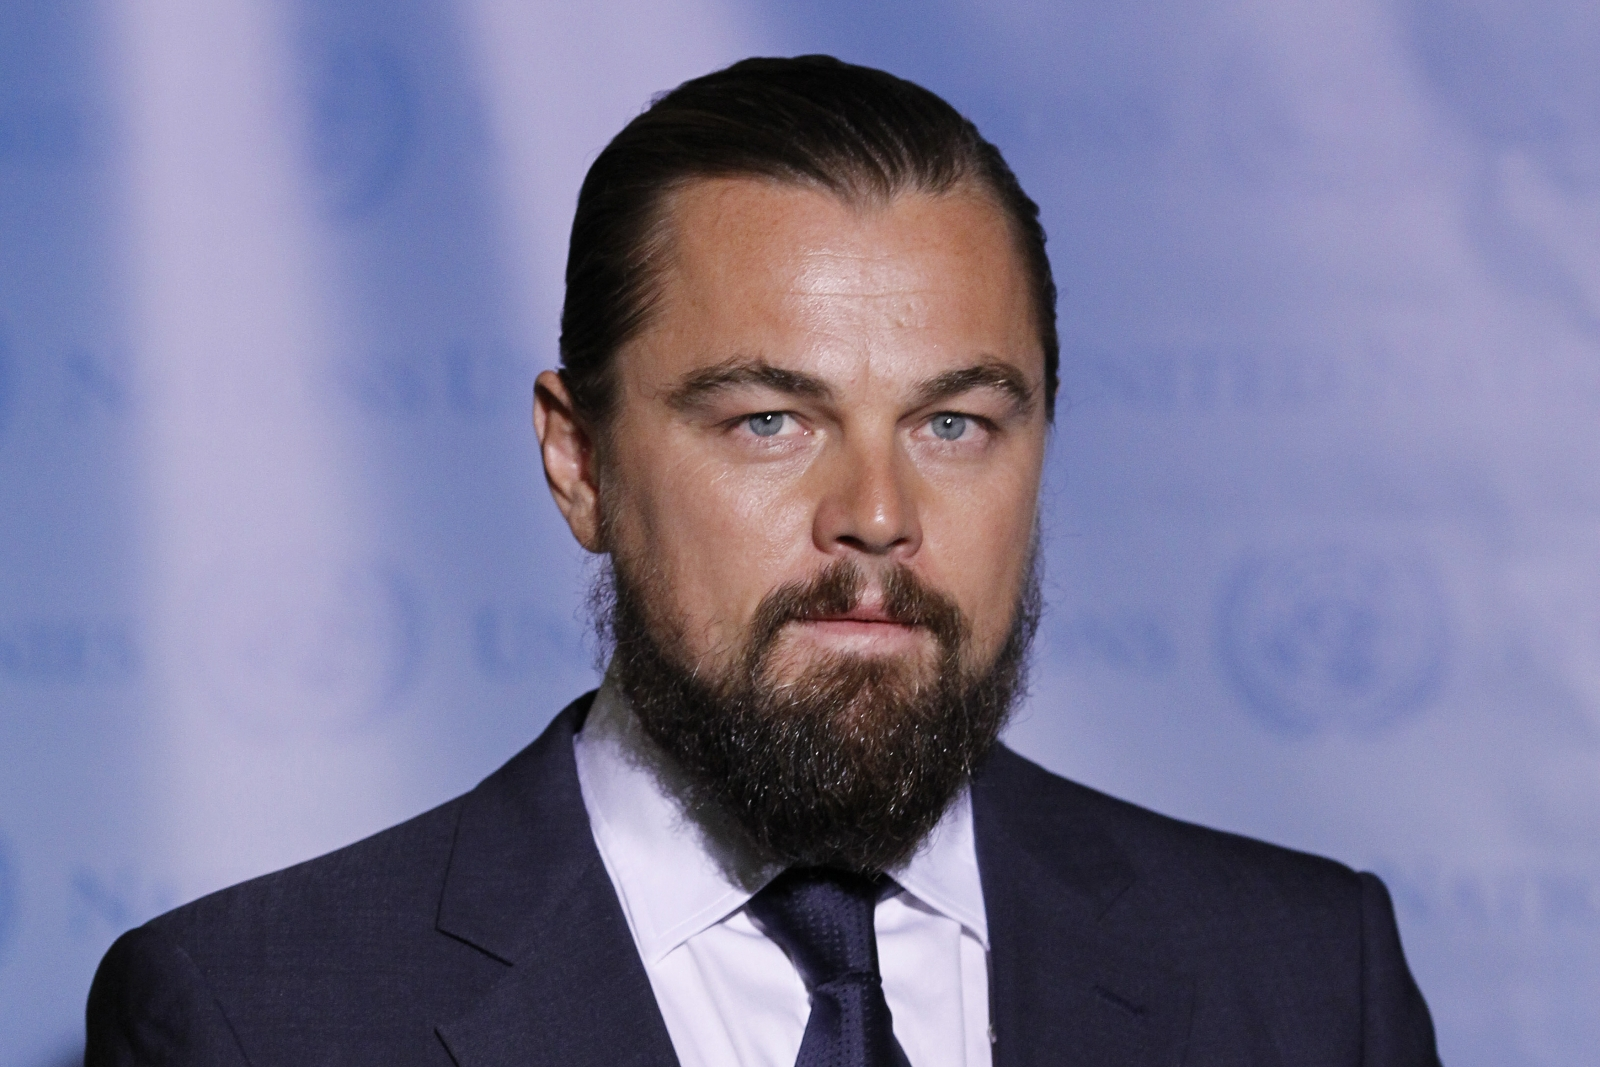 Leonardo Dicaprio To Play Serial Killer Hh Holmes In